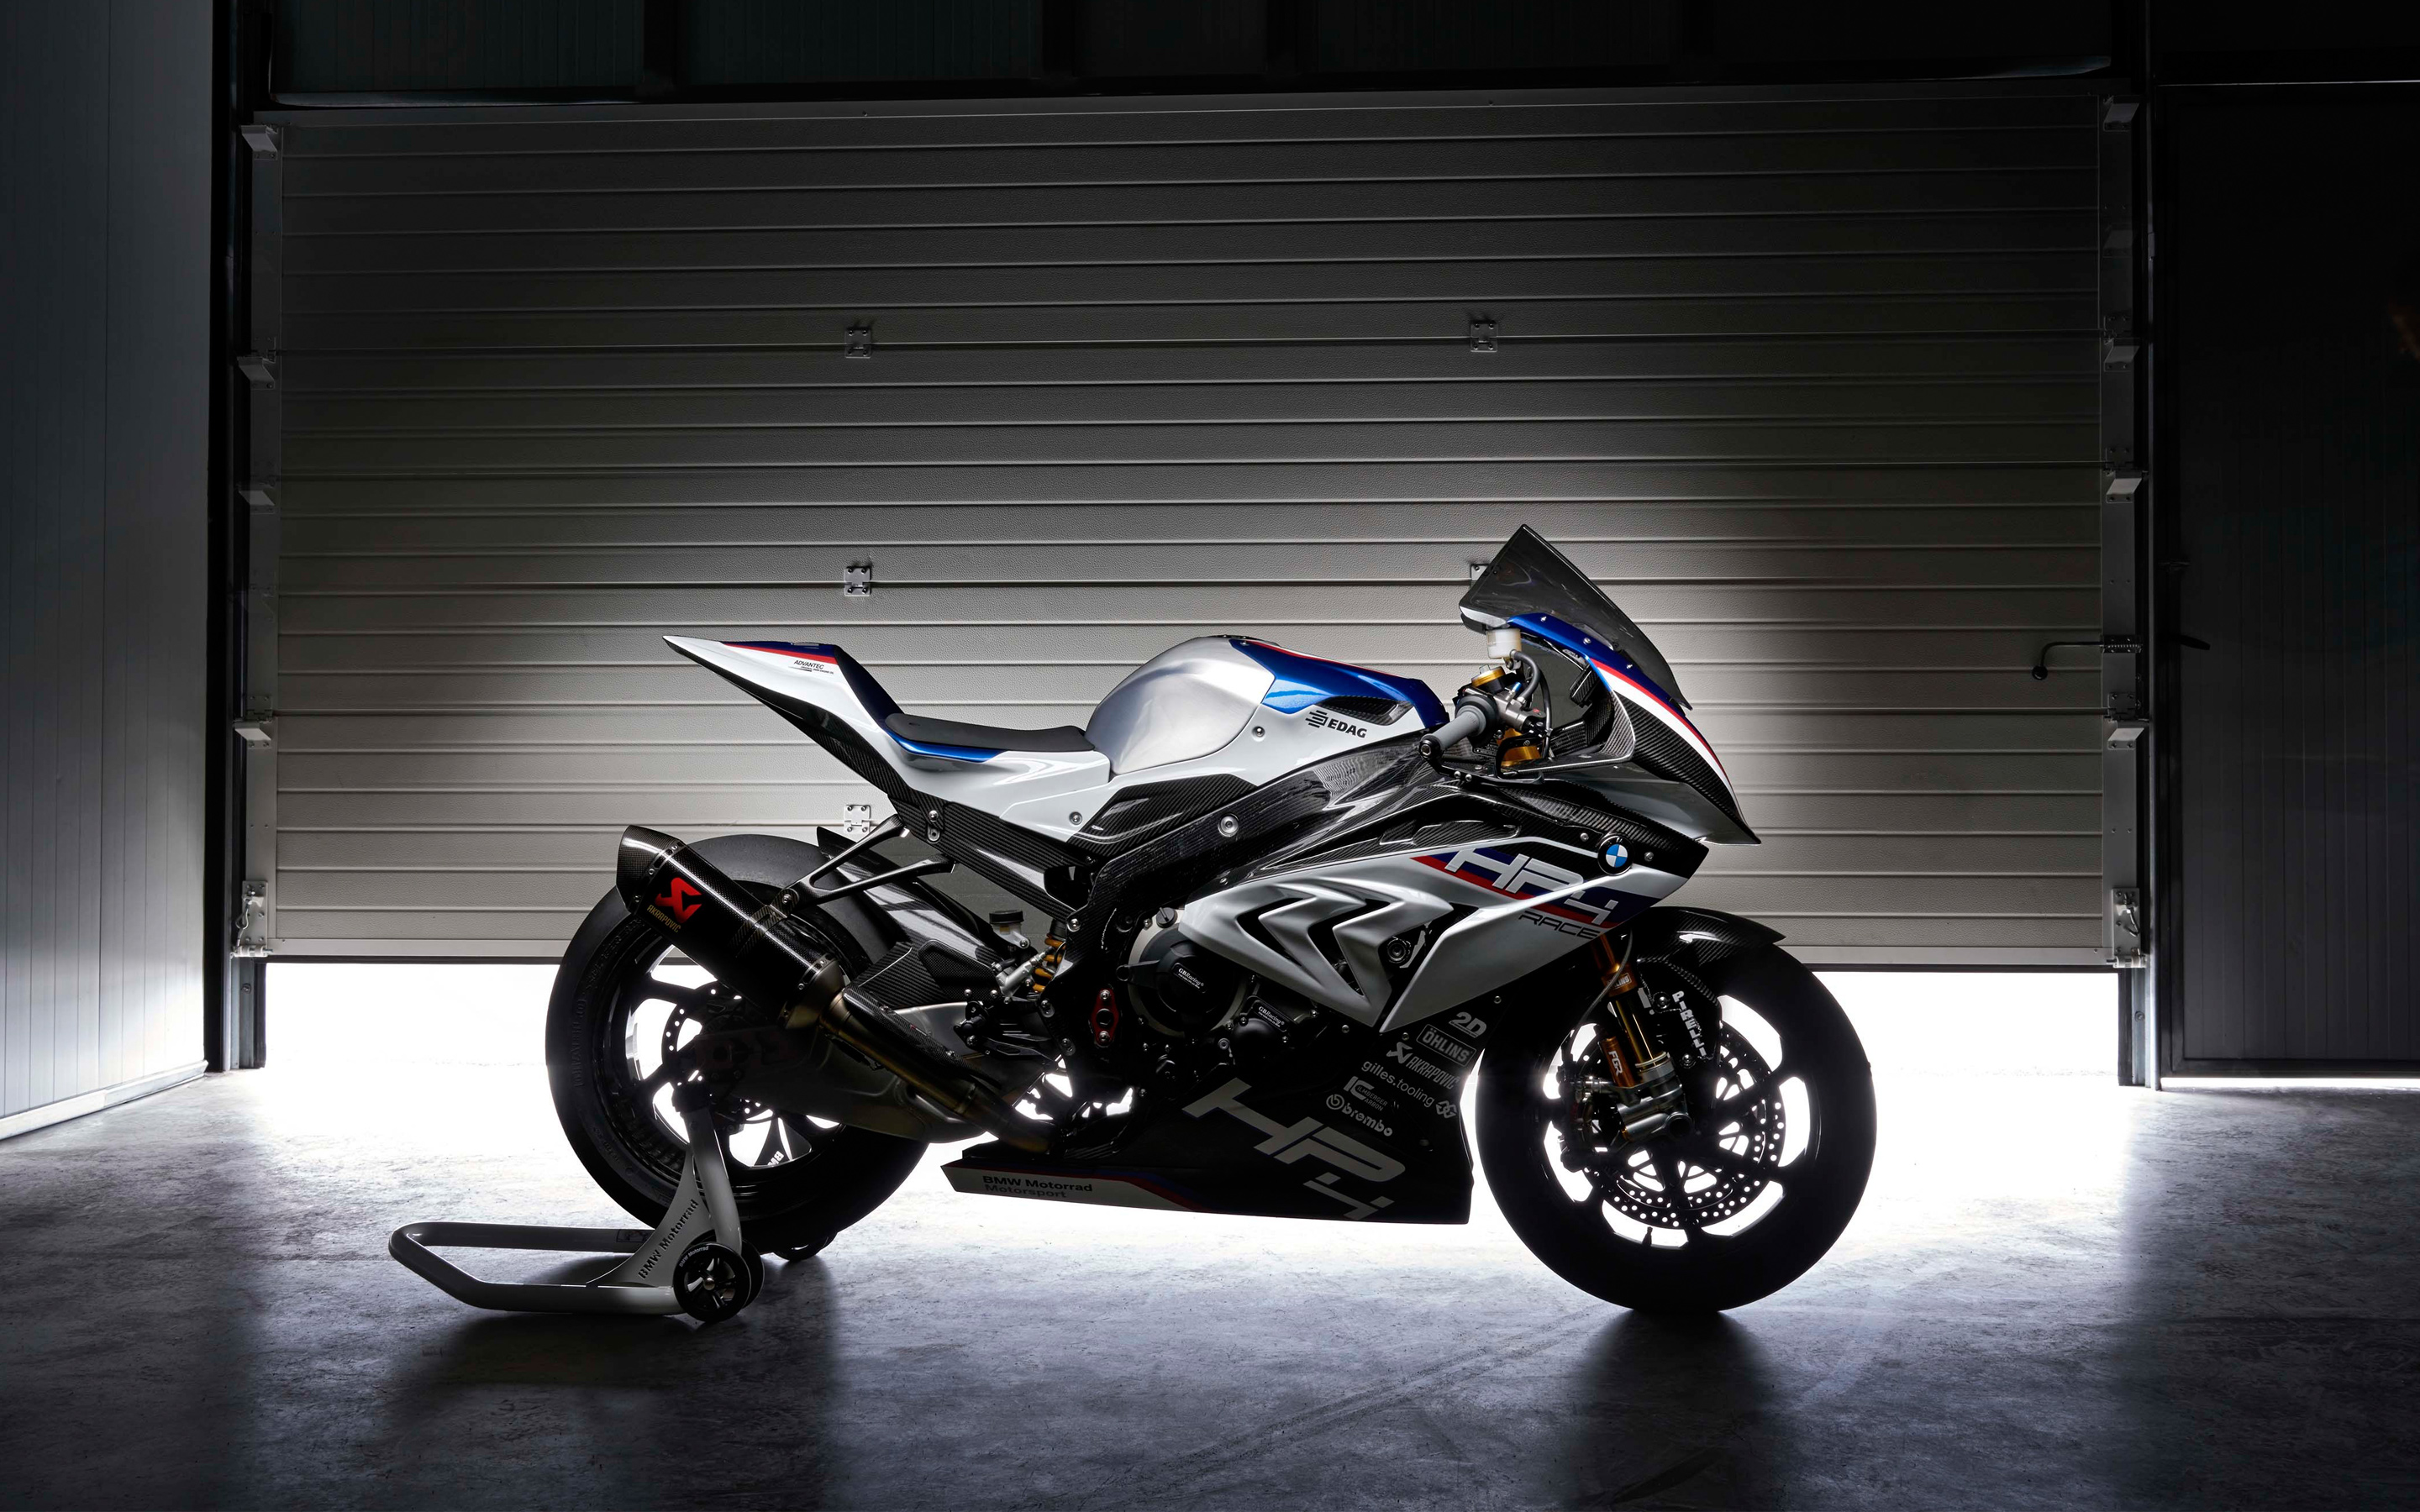 BMW HP4 White 4K Widescreen Desktop Wallpaper 1008 2880x1800 px 2880x1800